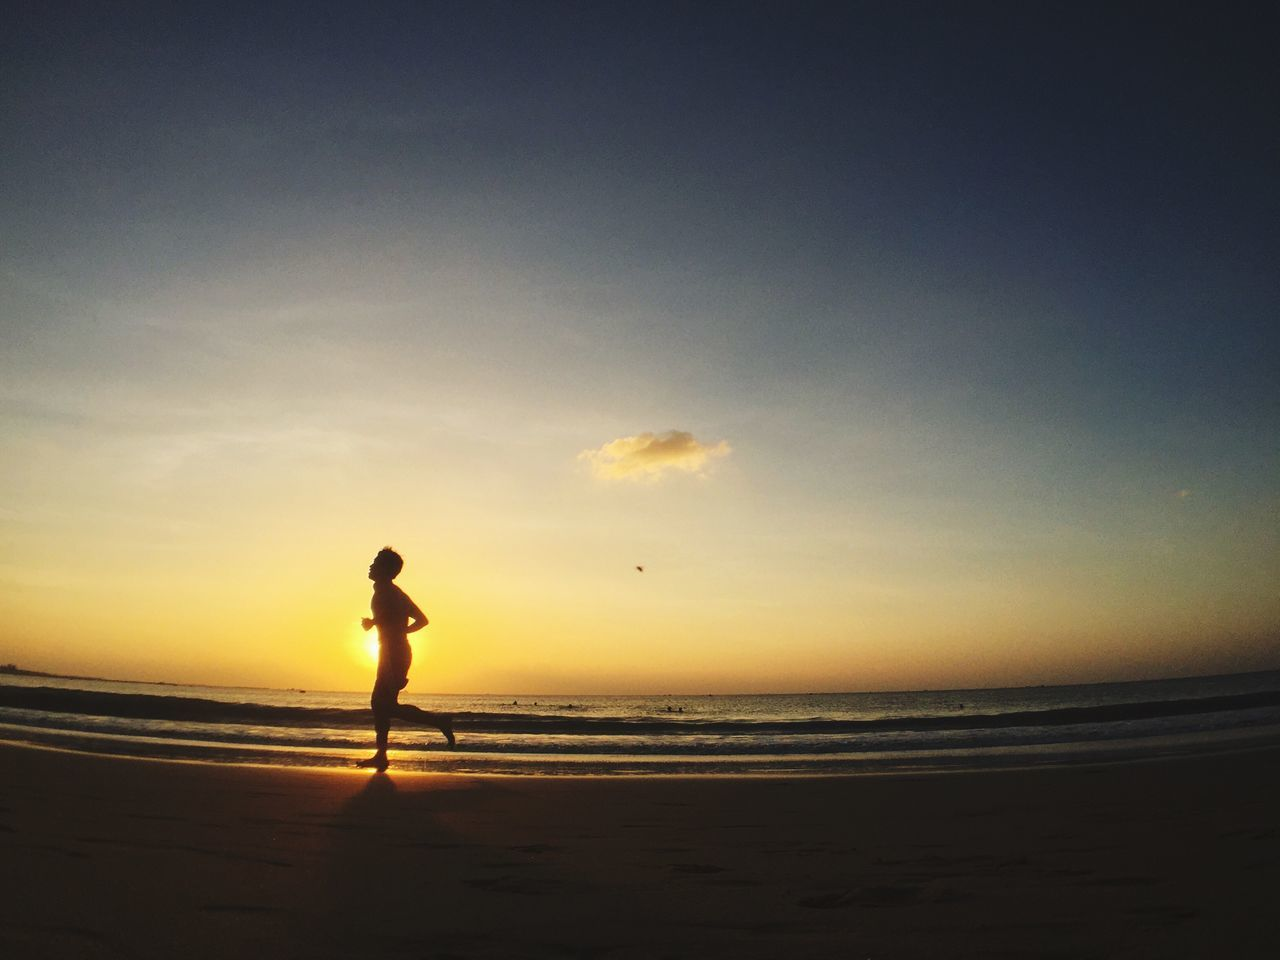 Man Running On Sea Shore During Sunset